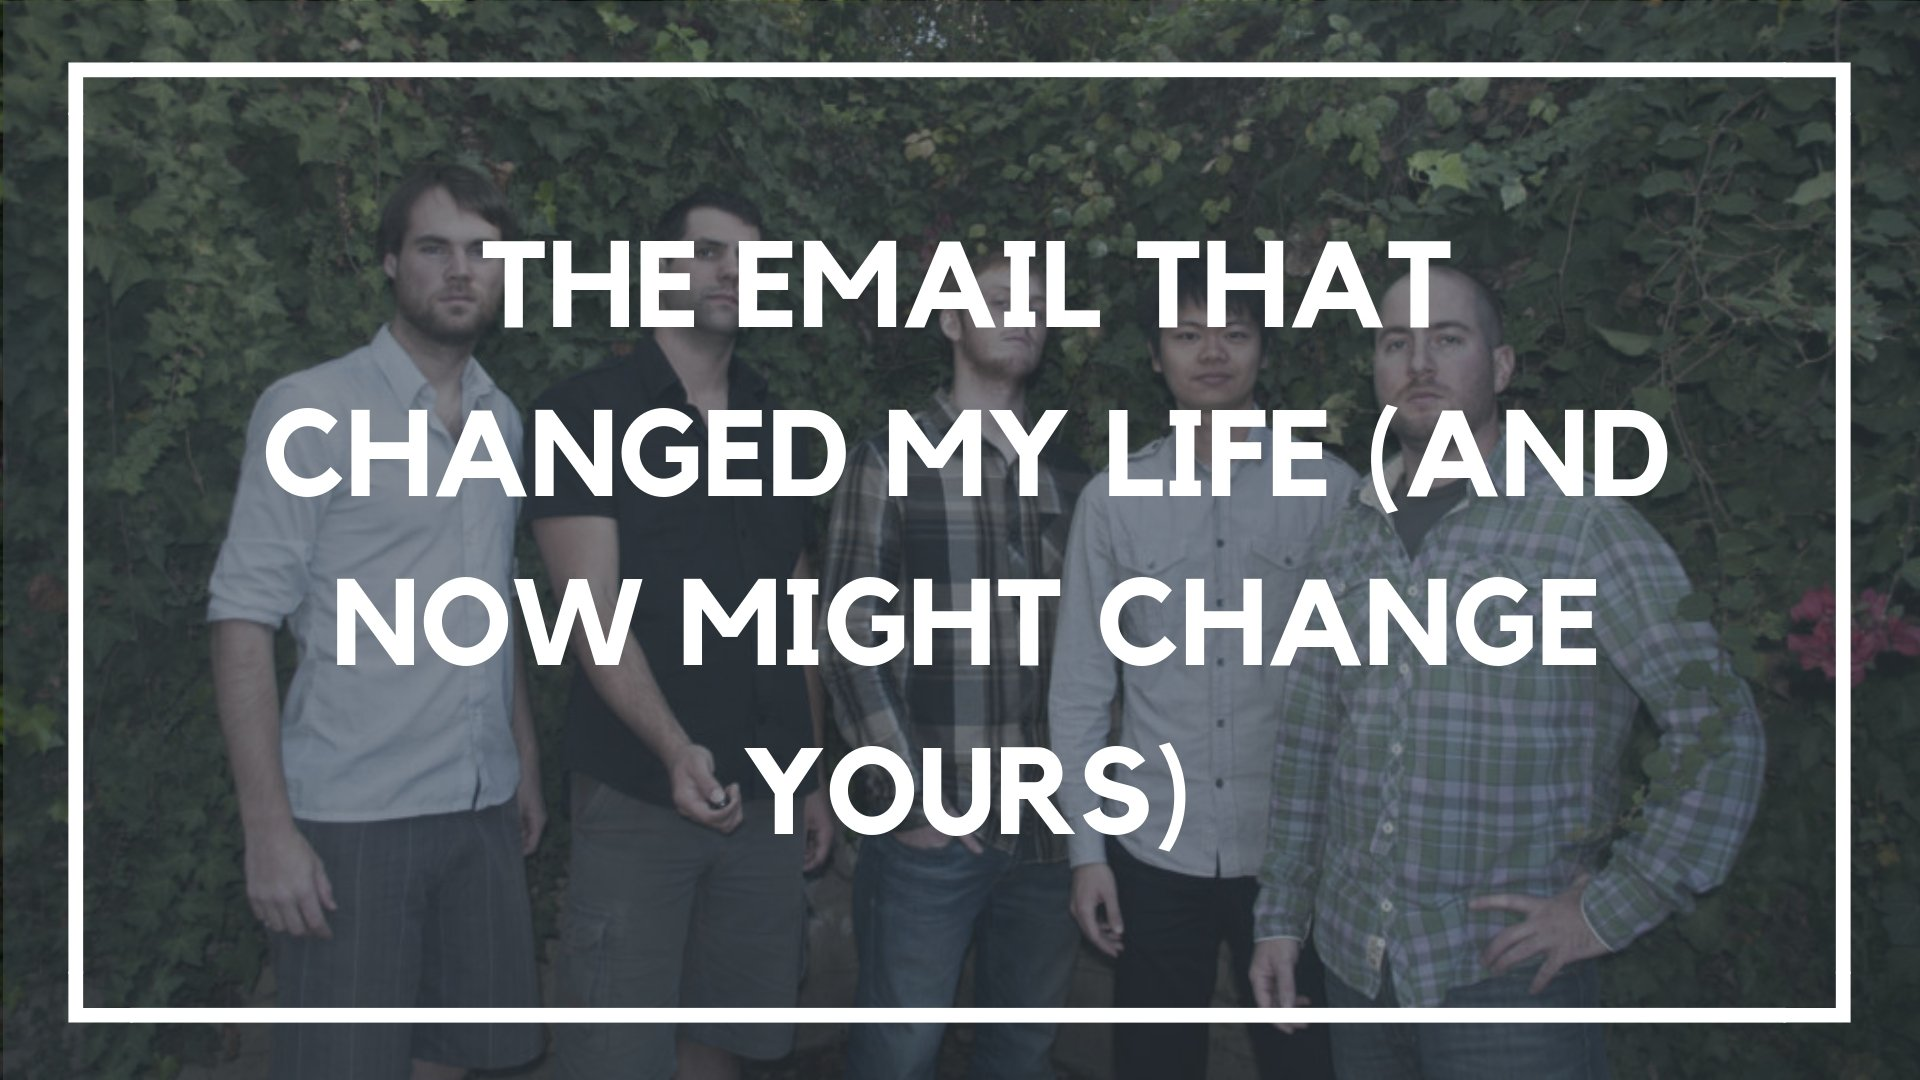 The Email that Changed My Life (And Now Might Change Yours)